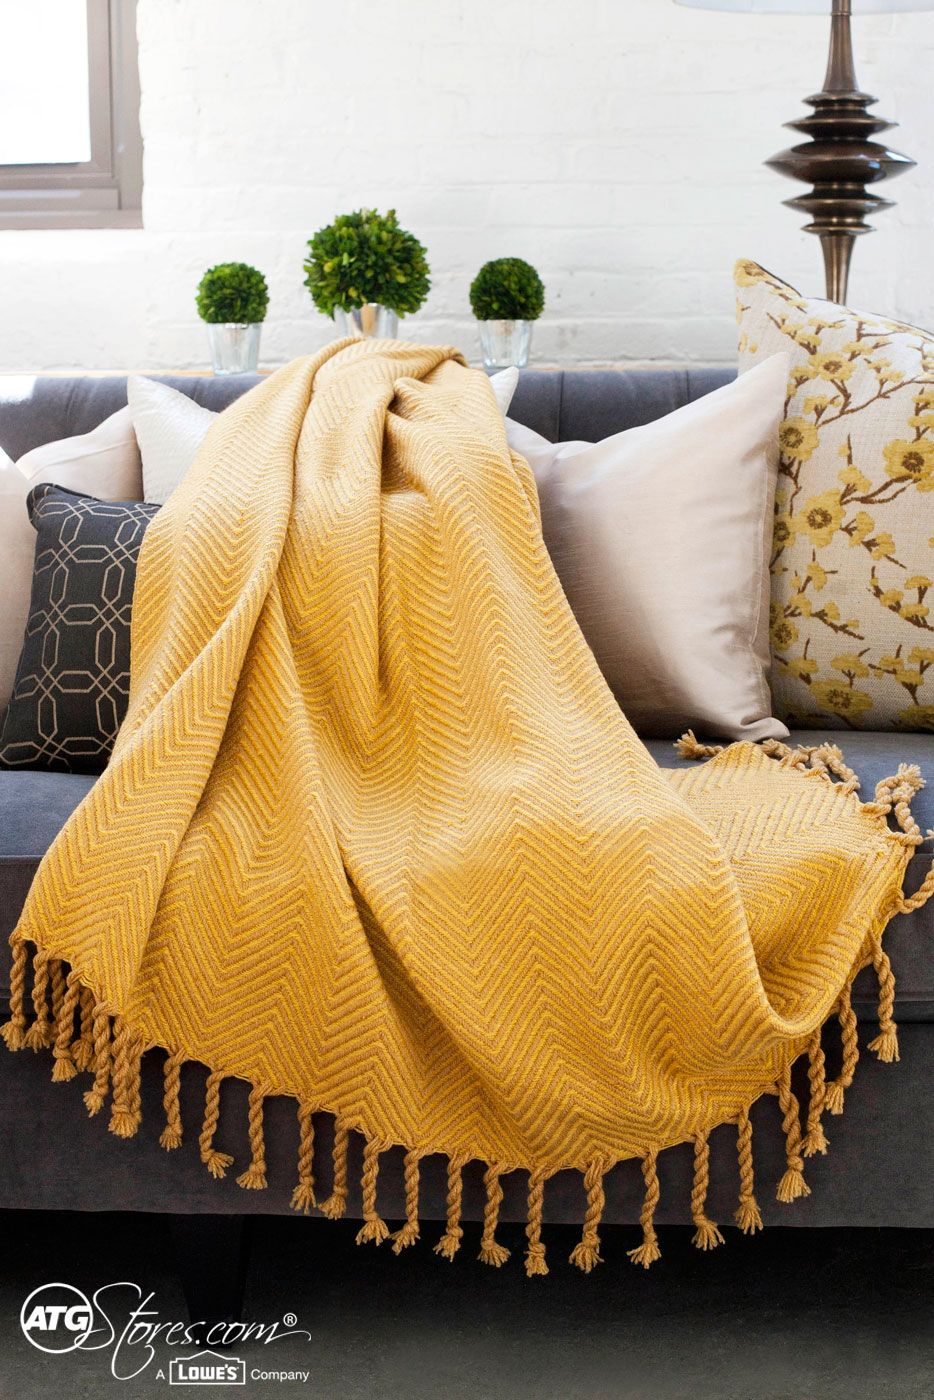 We Love This Cozy Throw